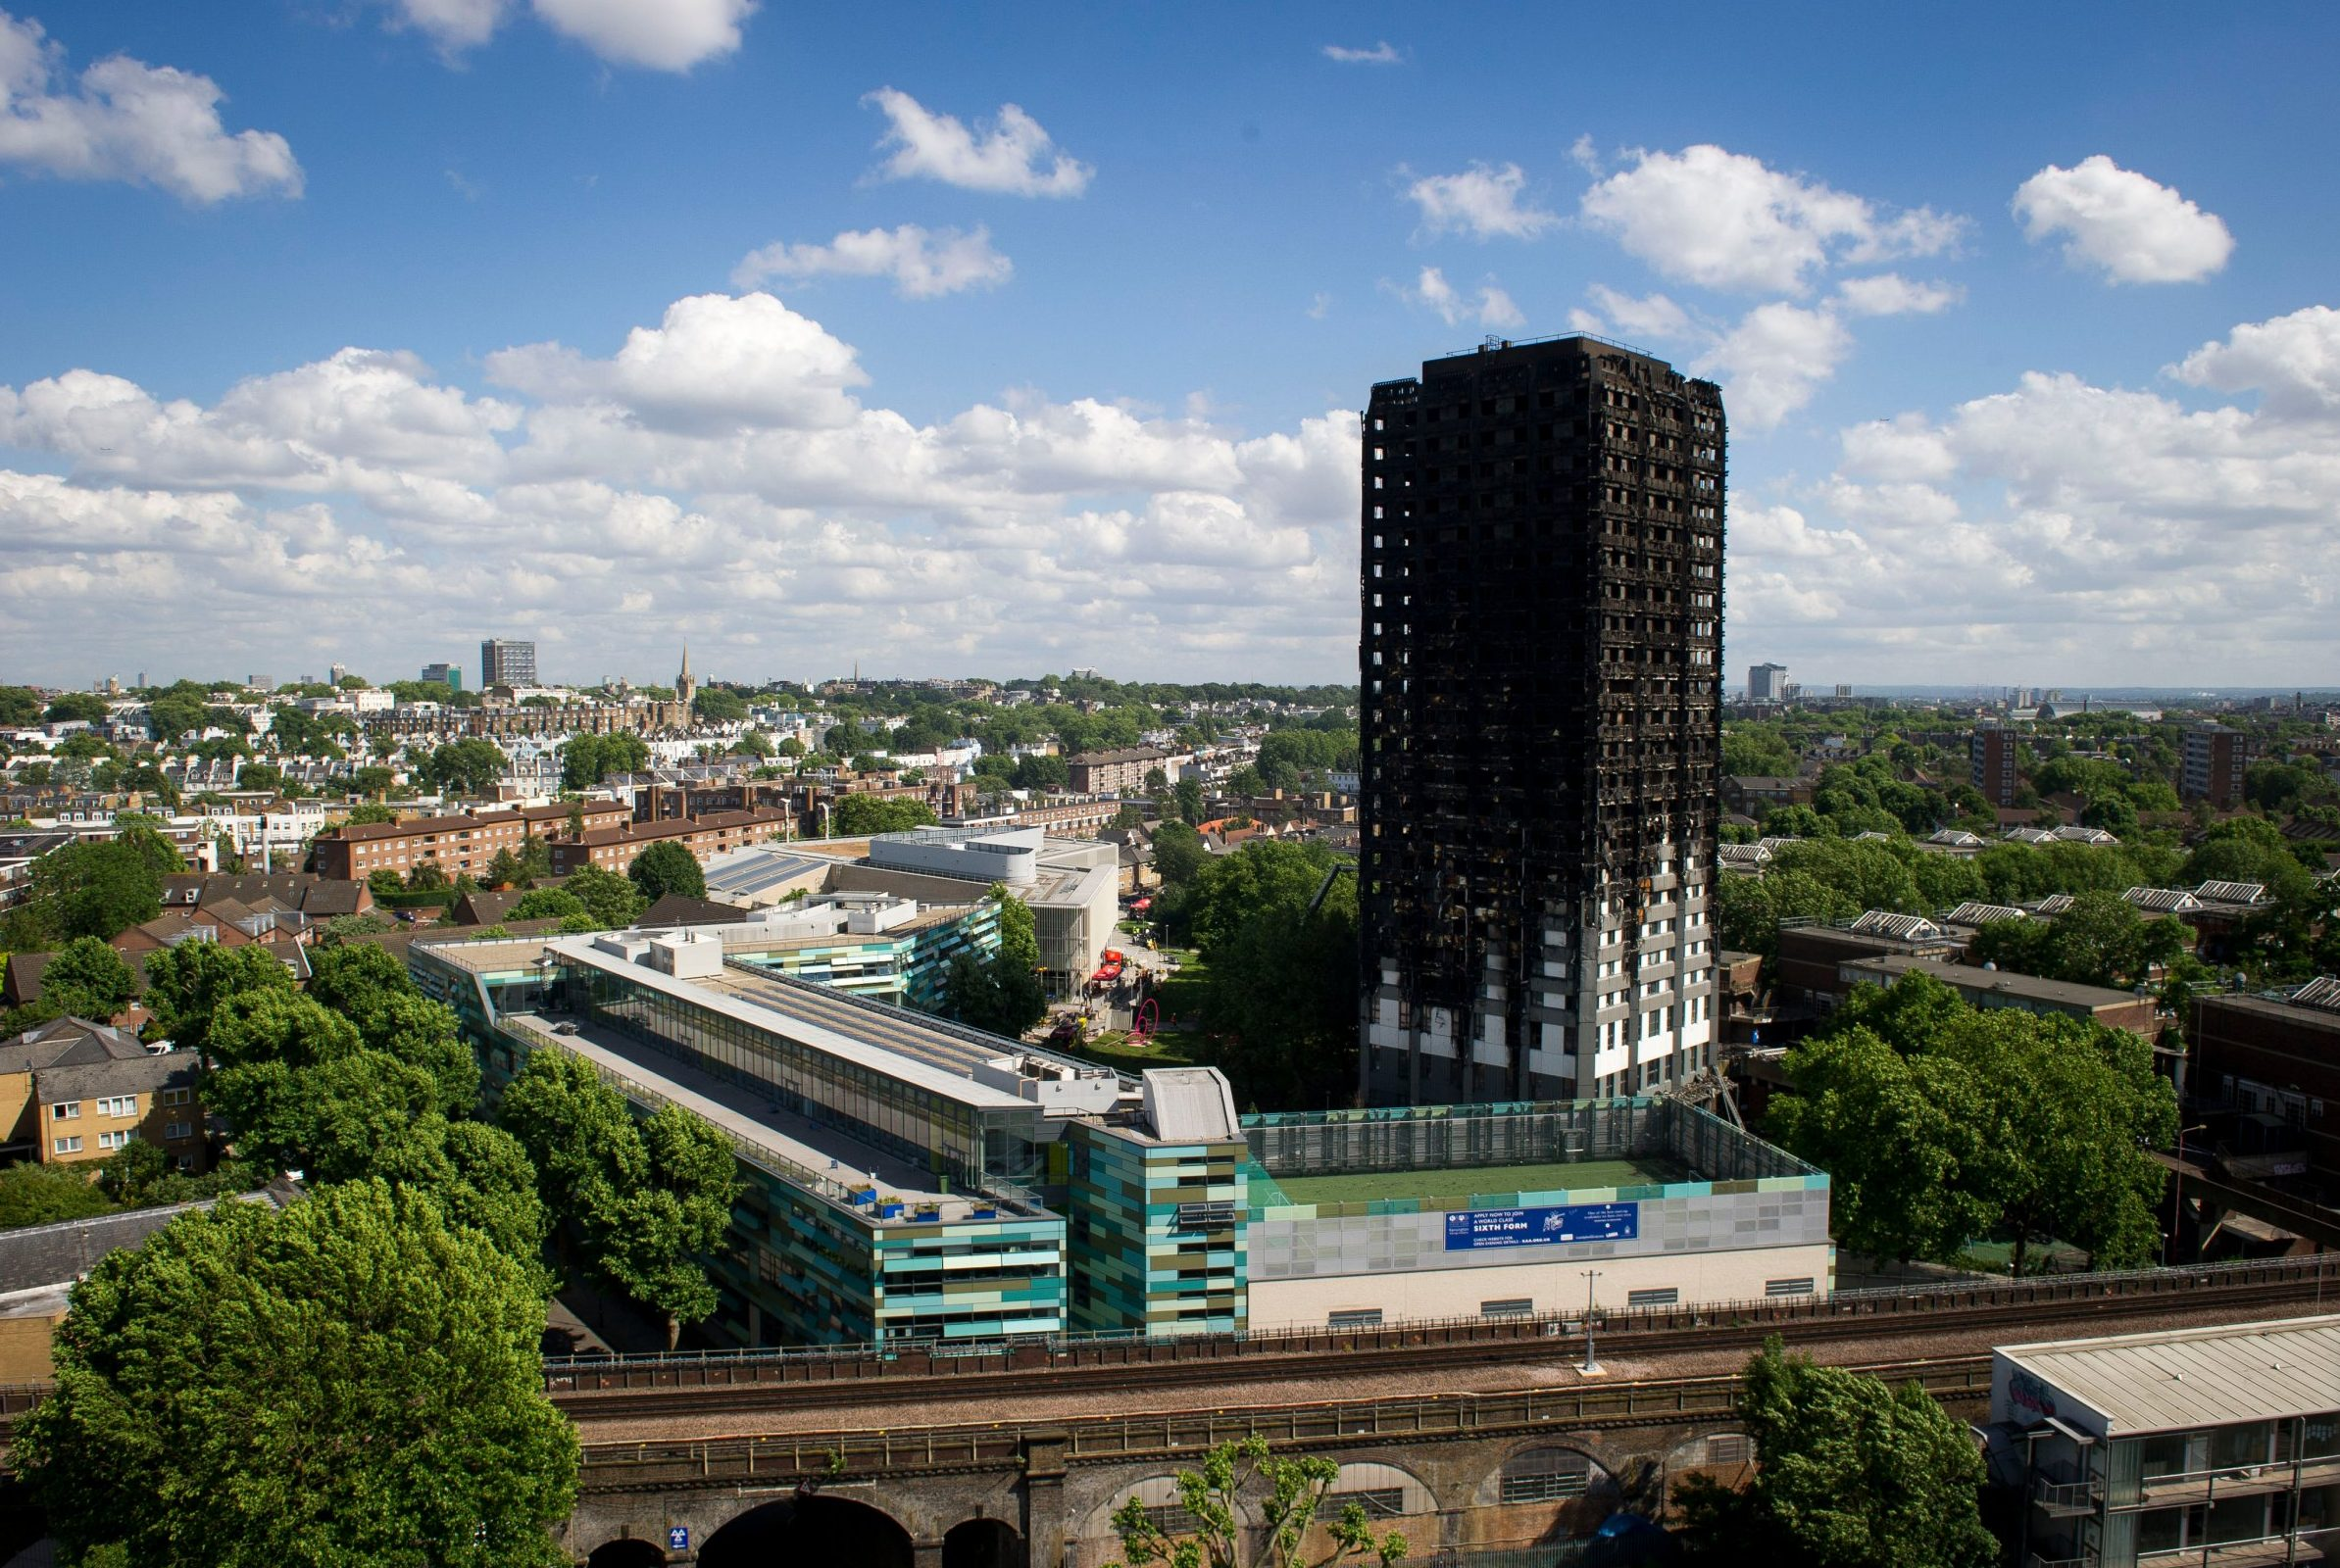 Mandatory Credit: Photo by Roland Hoskins/ANL/REX/Shutterstock (9721286a) Grenfell Tower North Kensington After The Horrific Fire. Grenfell Tower North Kensington After The Horrific Fire.